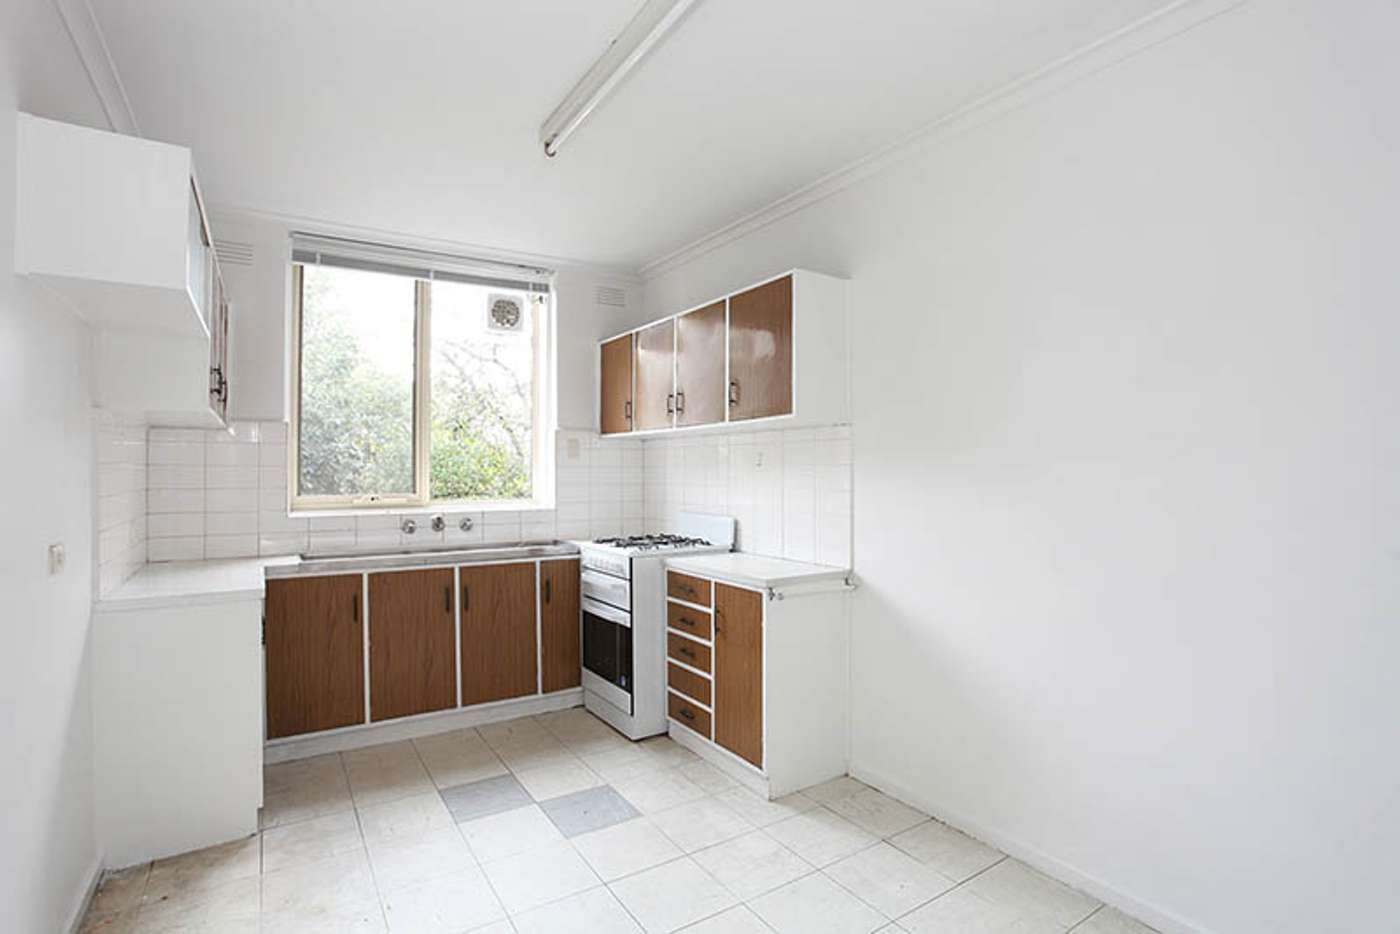 Main view of Homely apartment listing, 2/1-3 Barkly Avenue, Armadale VIC 3143